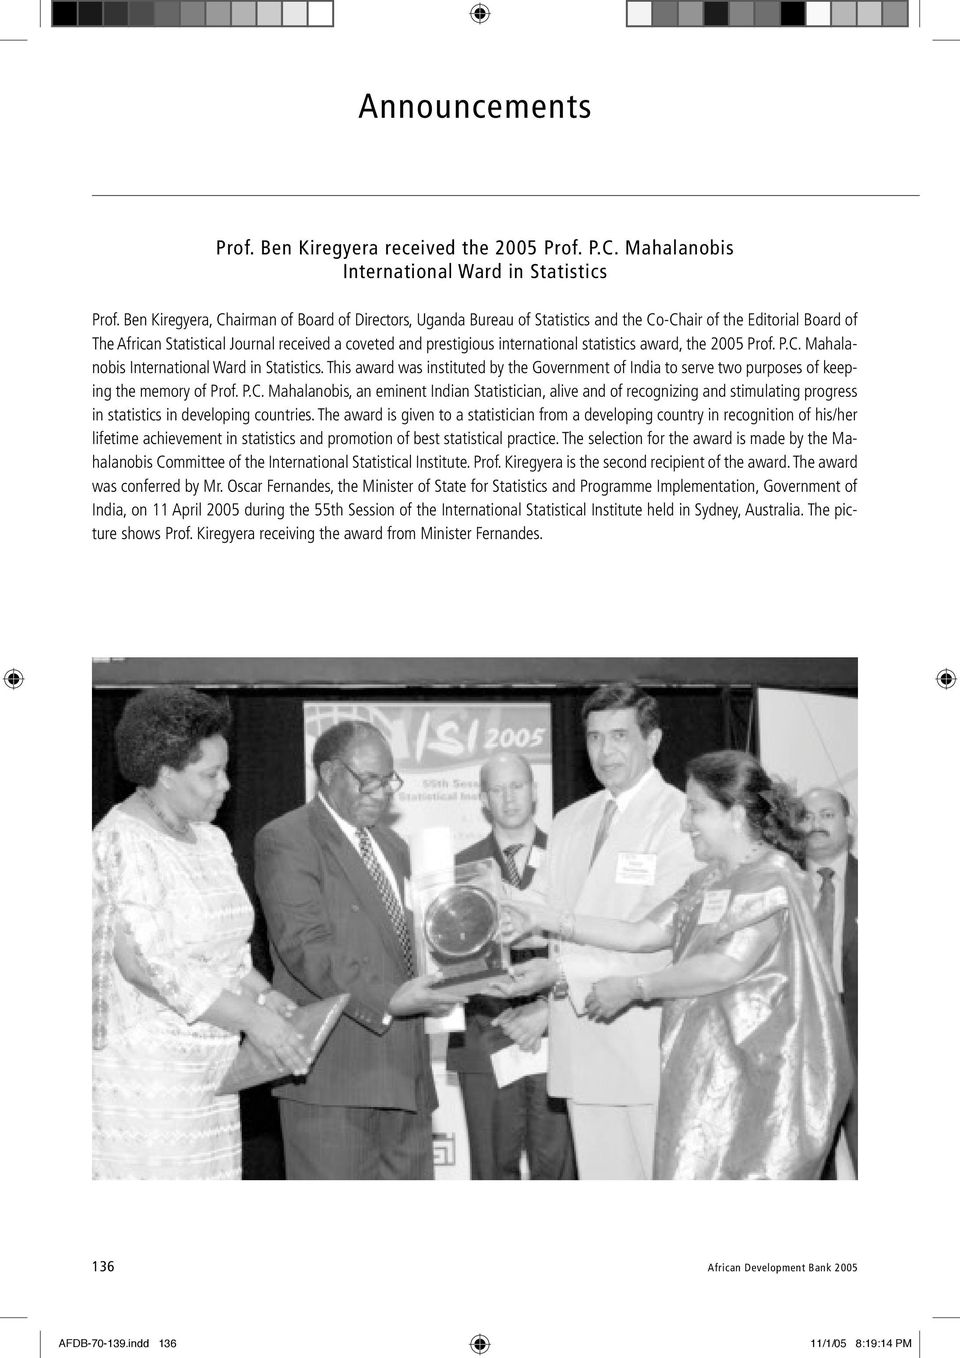 statistics award, the 2005 Prof. P.C. Mahalanobis International Ward in Statistics. This award was instituted by the Government of India to serve two purposes of keeping the memory of Prof. P.C. Mahalanobis, an eminent Indian Statistician, alive and of recognizing and stimulating progress in statistics in developing countries.